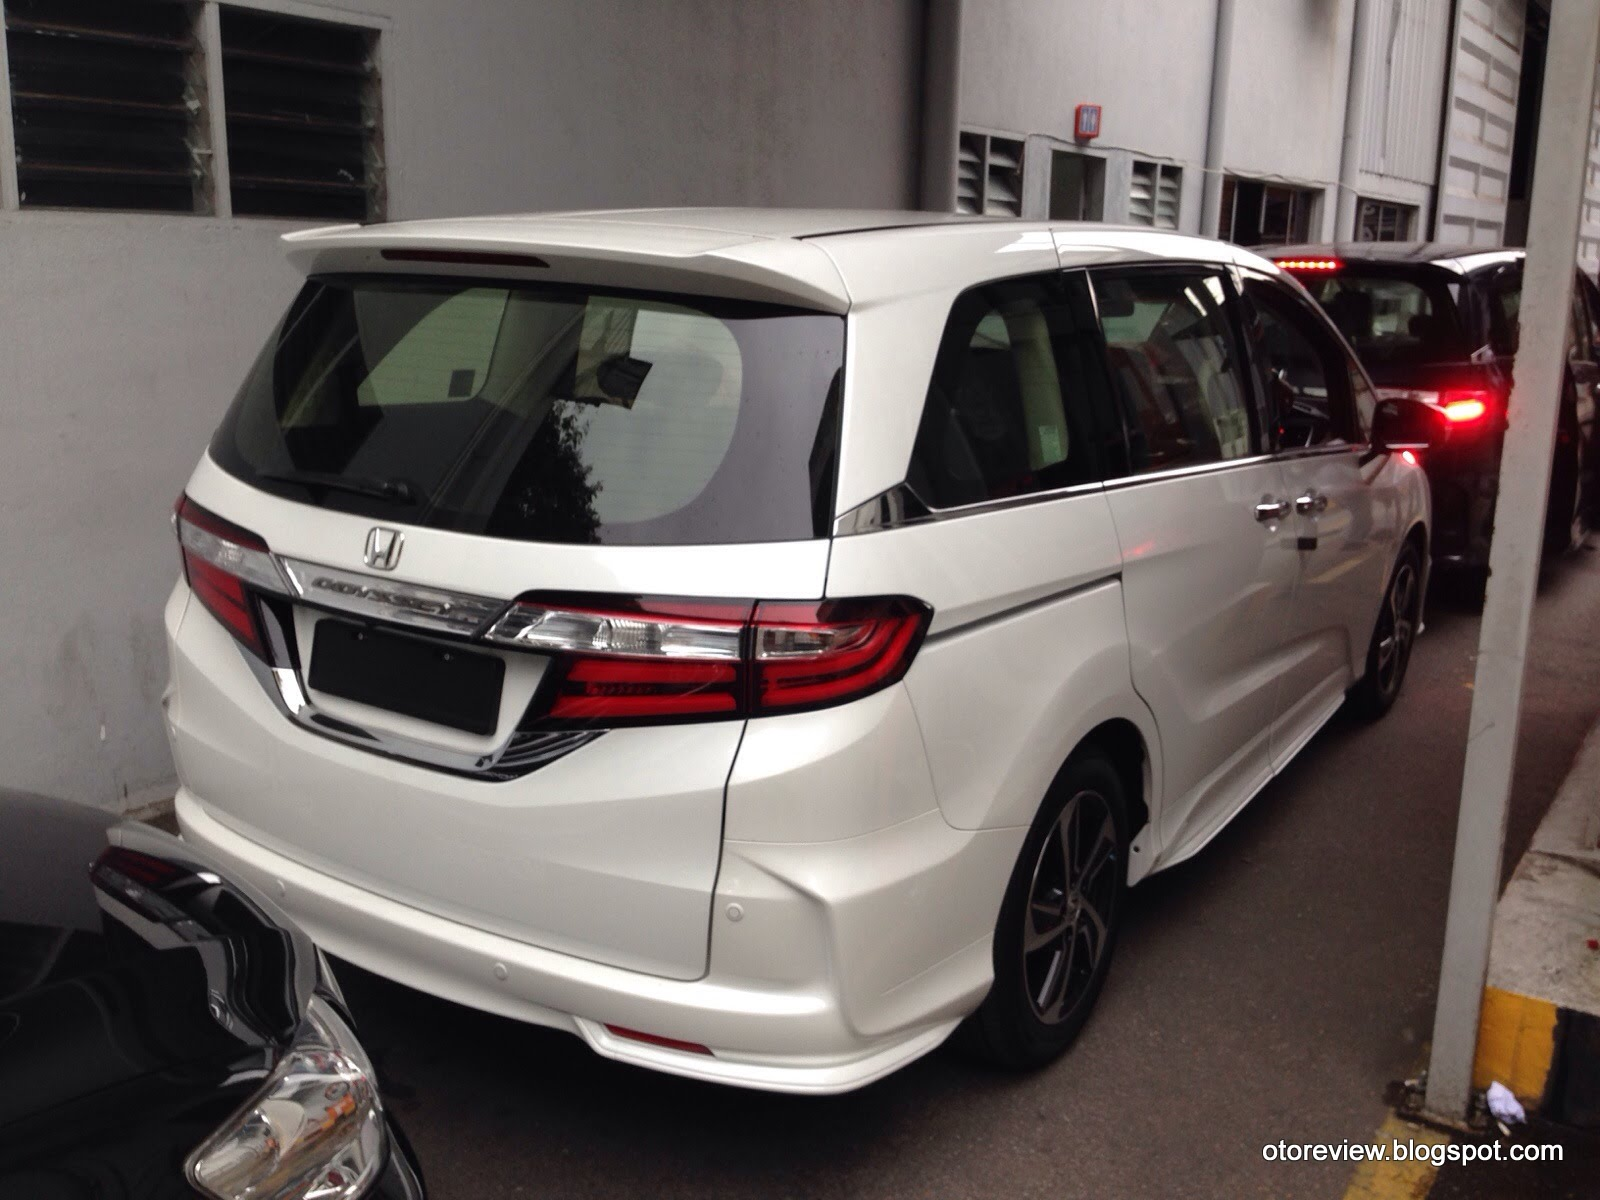 CLOSE UP: Honda Odyssey EX V Earth Dreams